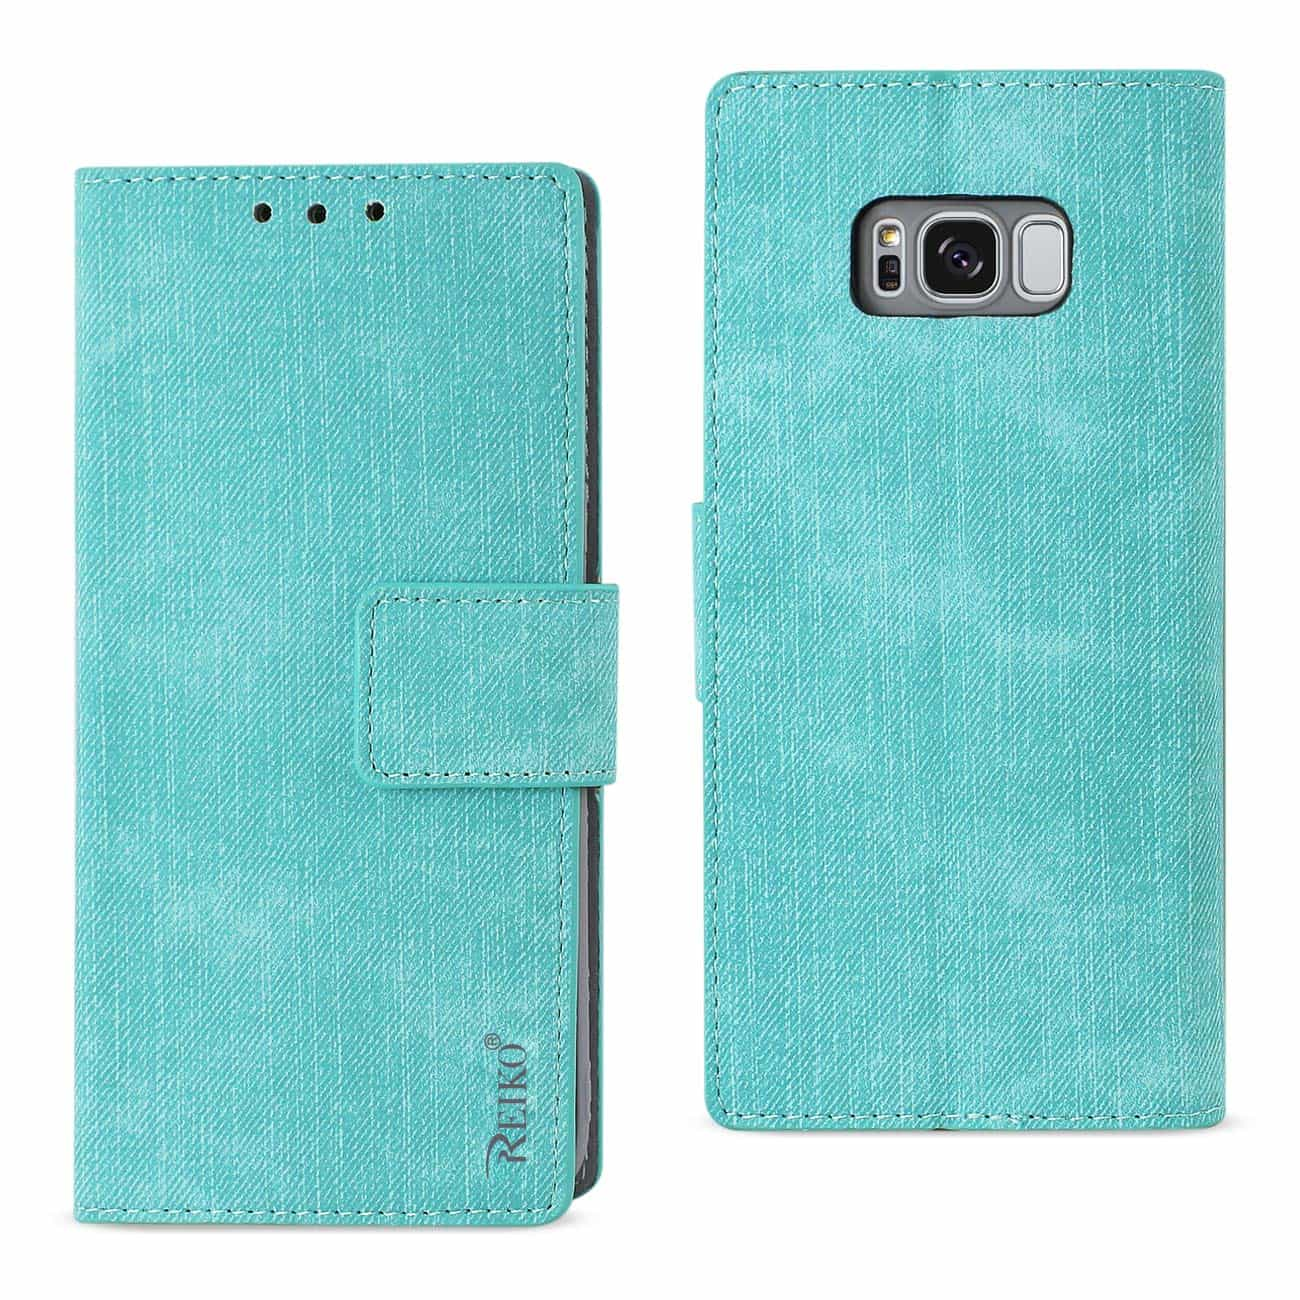 SAMSUNG GALAXY S8/ SM DENIM WALLET CASE WITH GUMMY INNER SHELL AND KICKSTAND FUNCTION IN BLUE